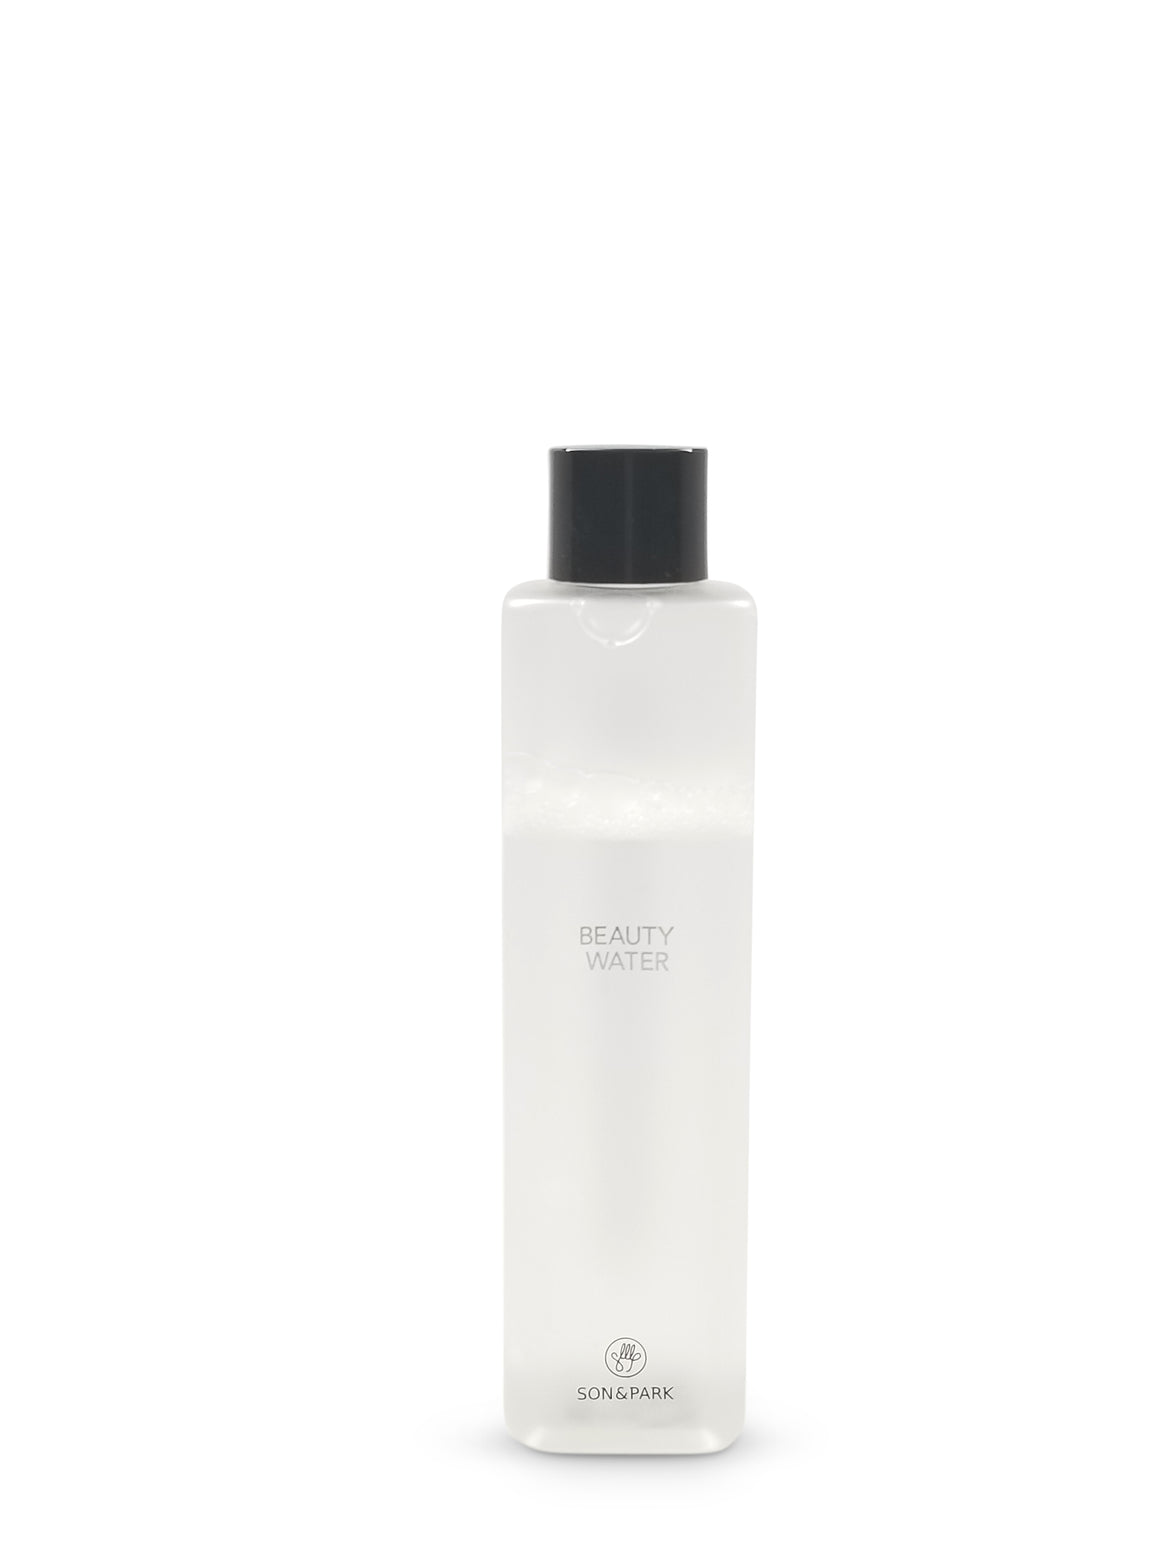 Beauty Water (multitasking toner)